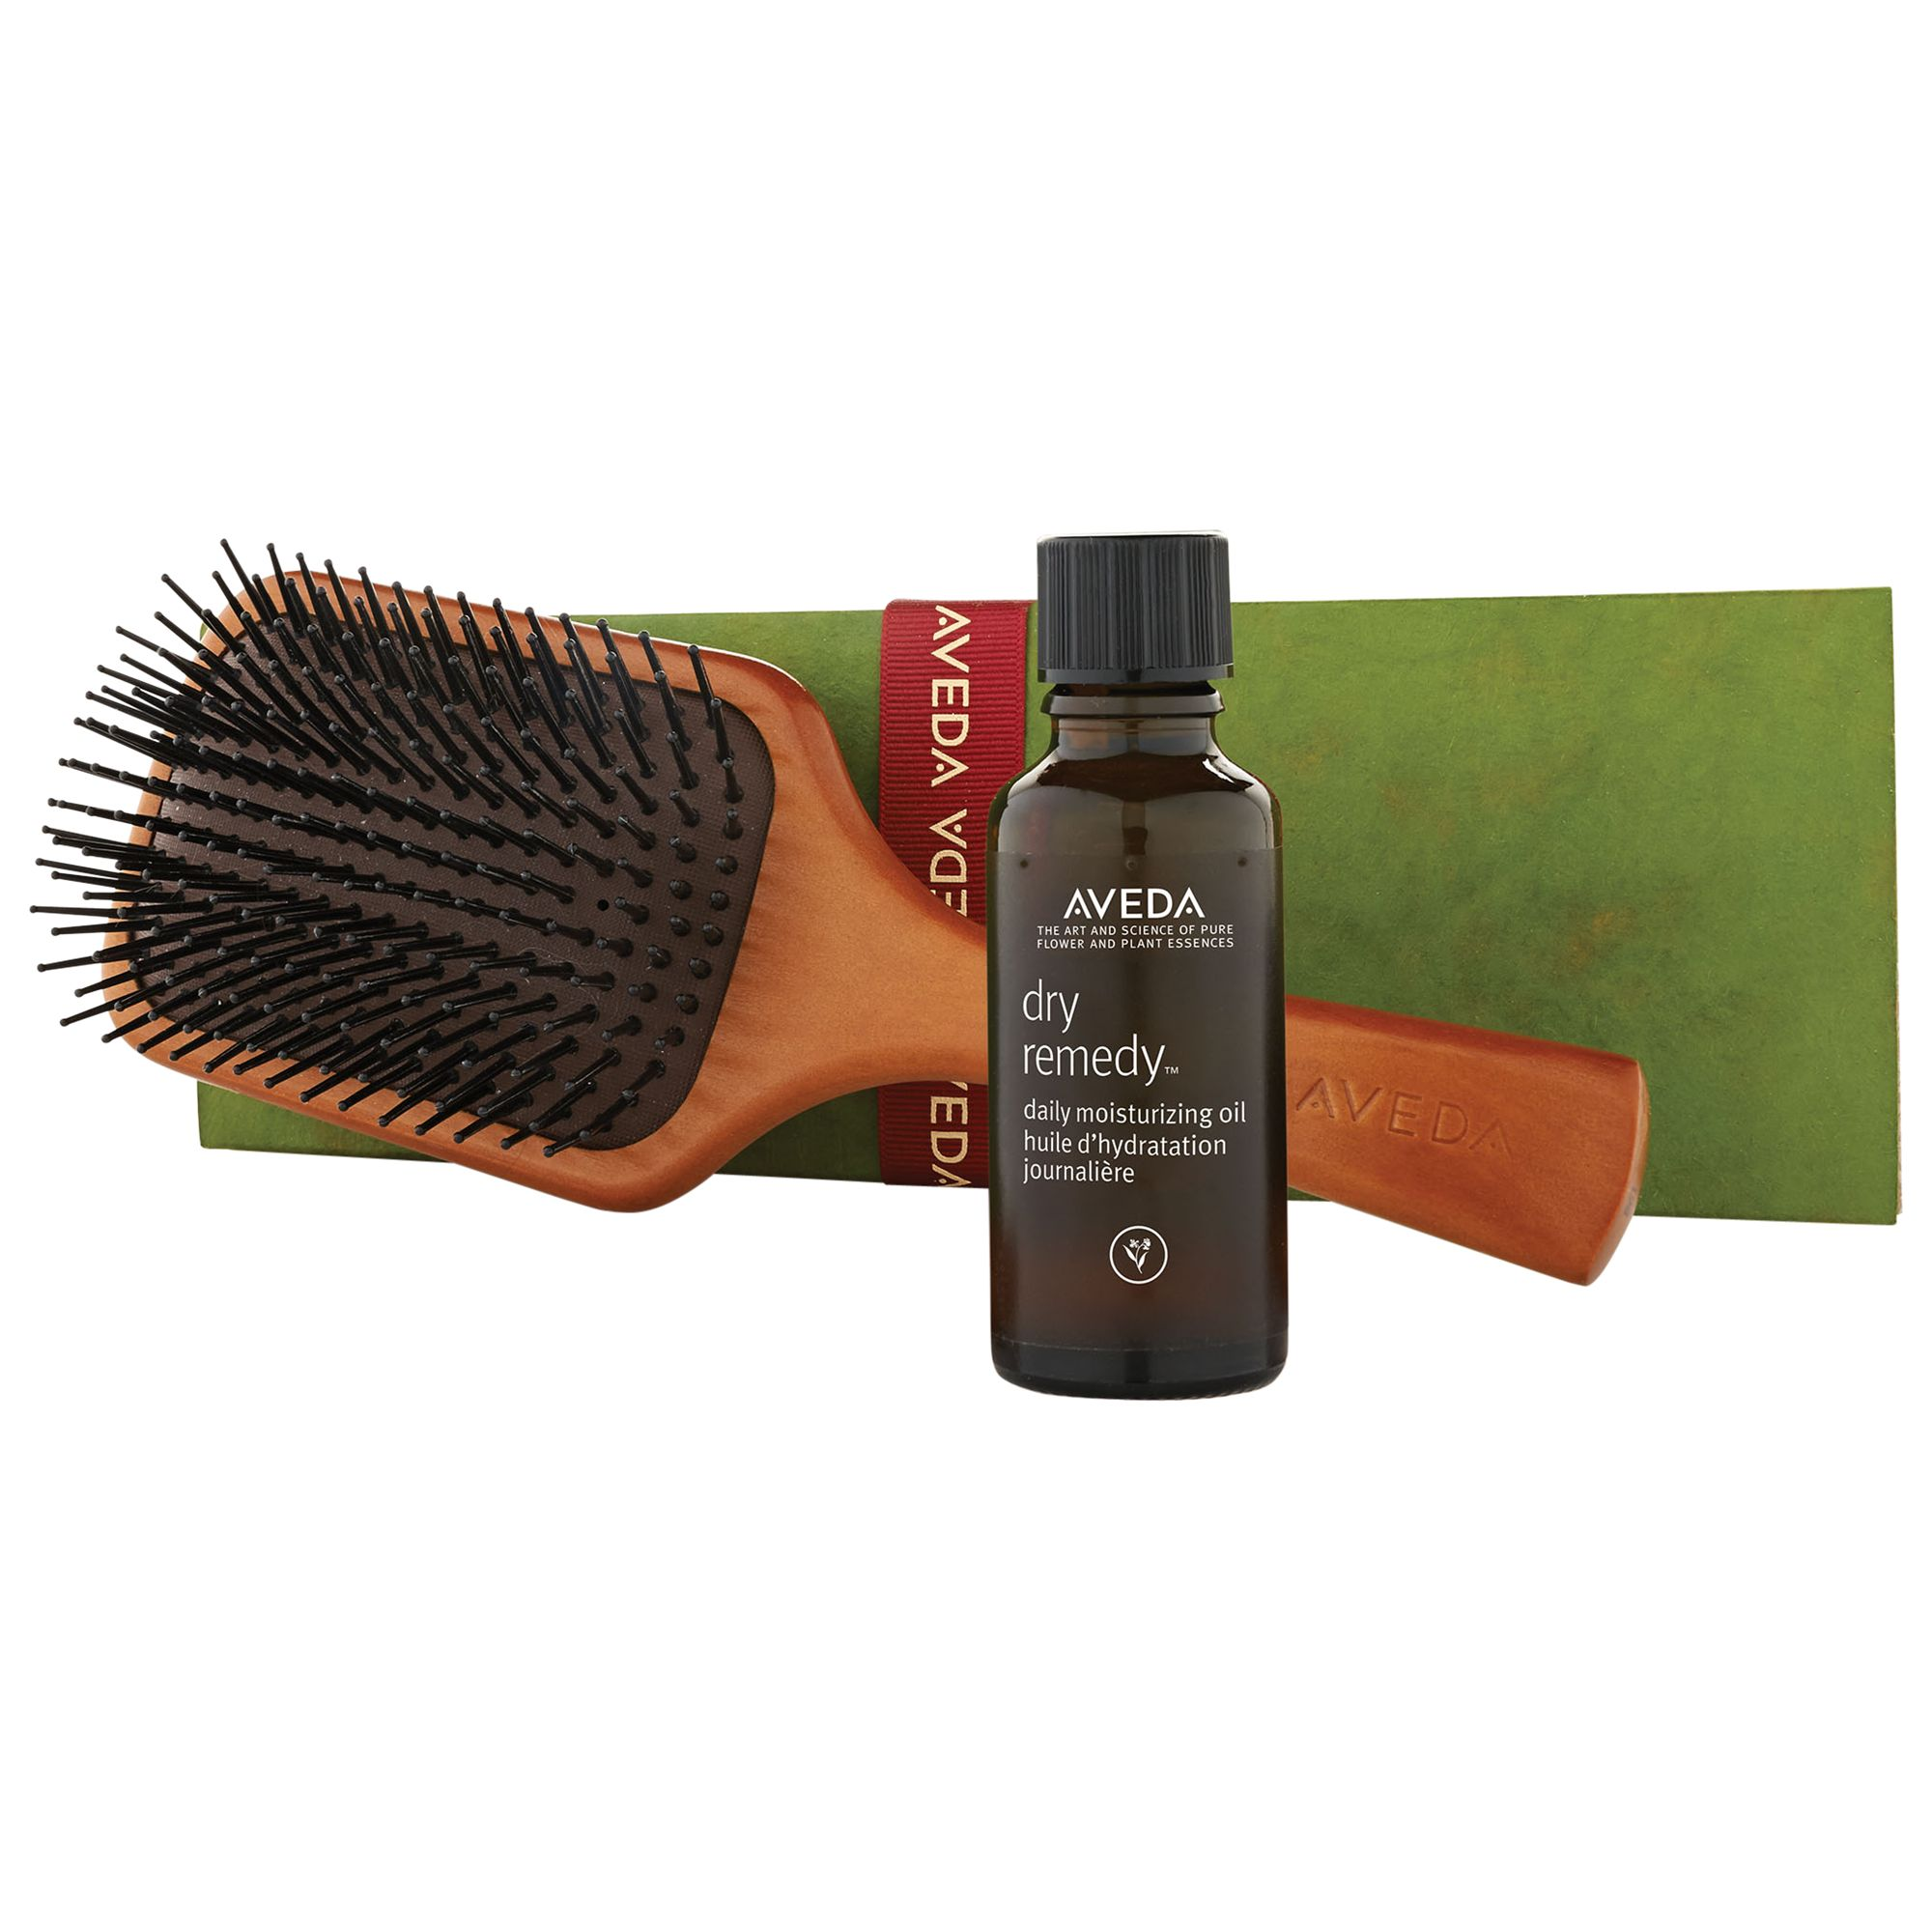 AVEDA AVEDA Dry Remedy Daily Moisturising Oil With Paddle Brush Haircare Gift Set